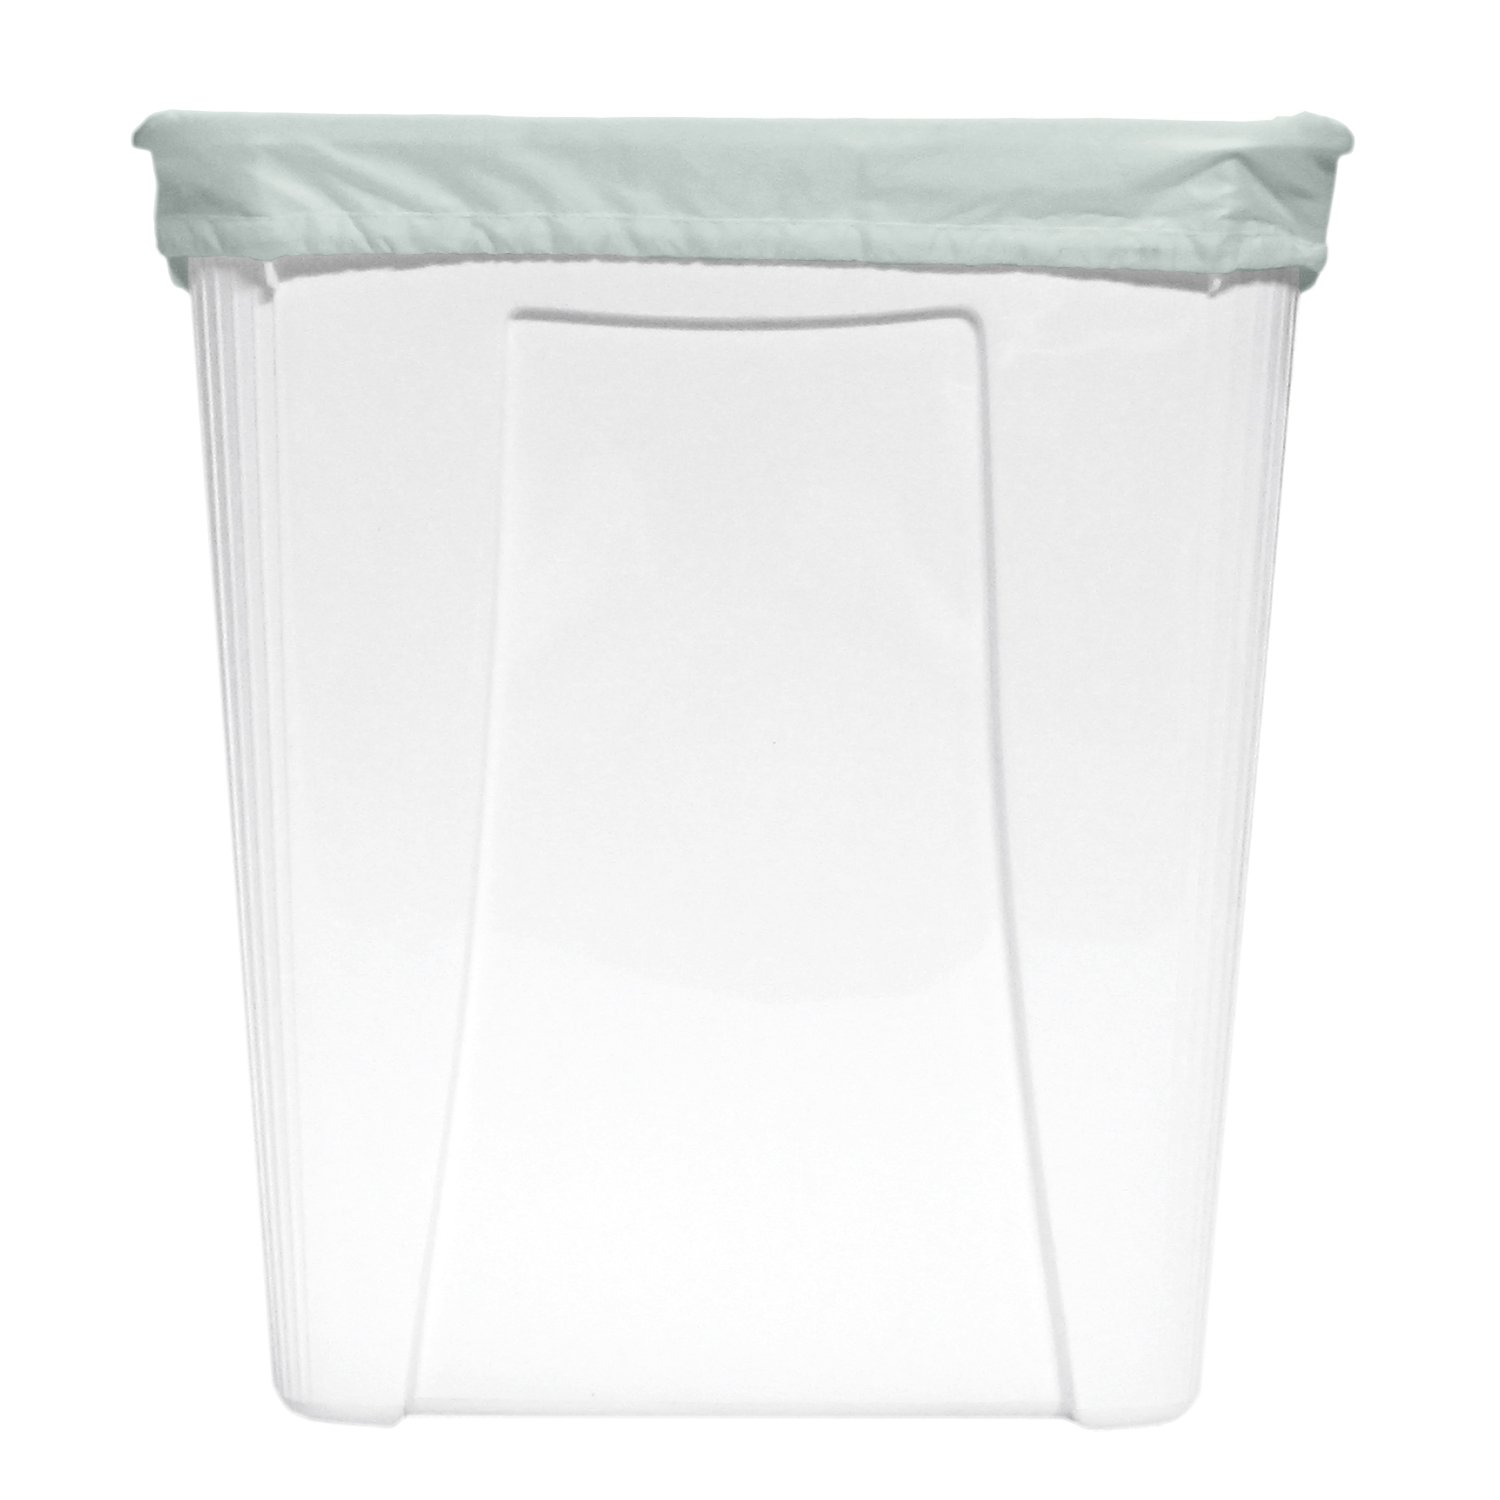 26 x 30 bumGenius Reusable Diaper Pail Liner Sierpinski Fits Most Pails